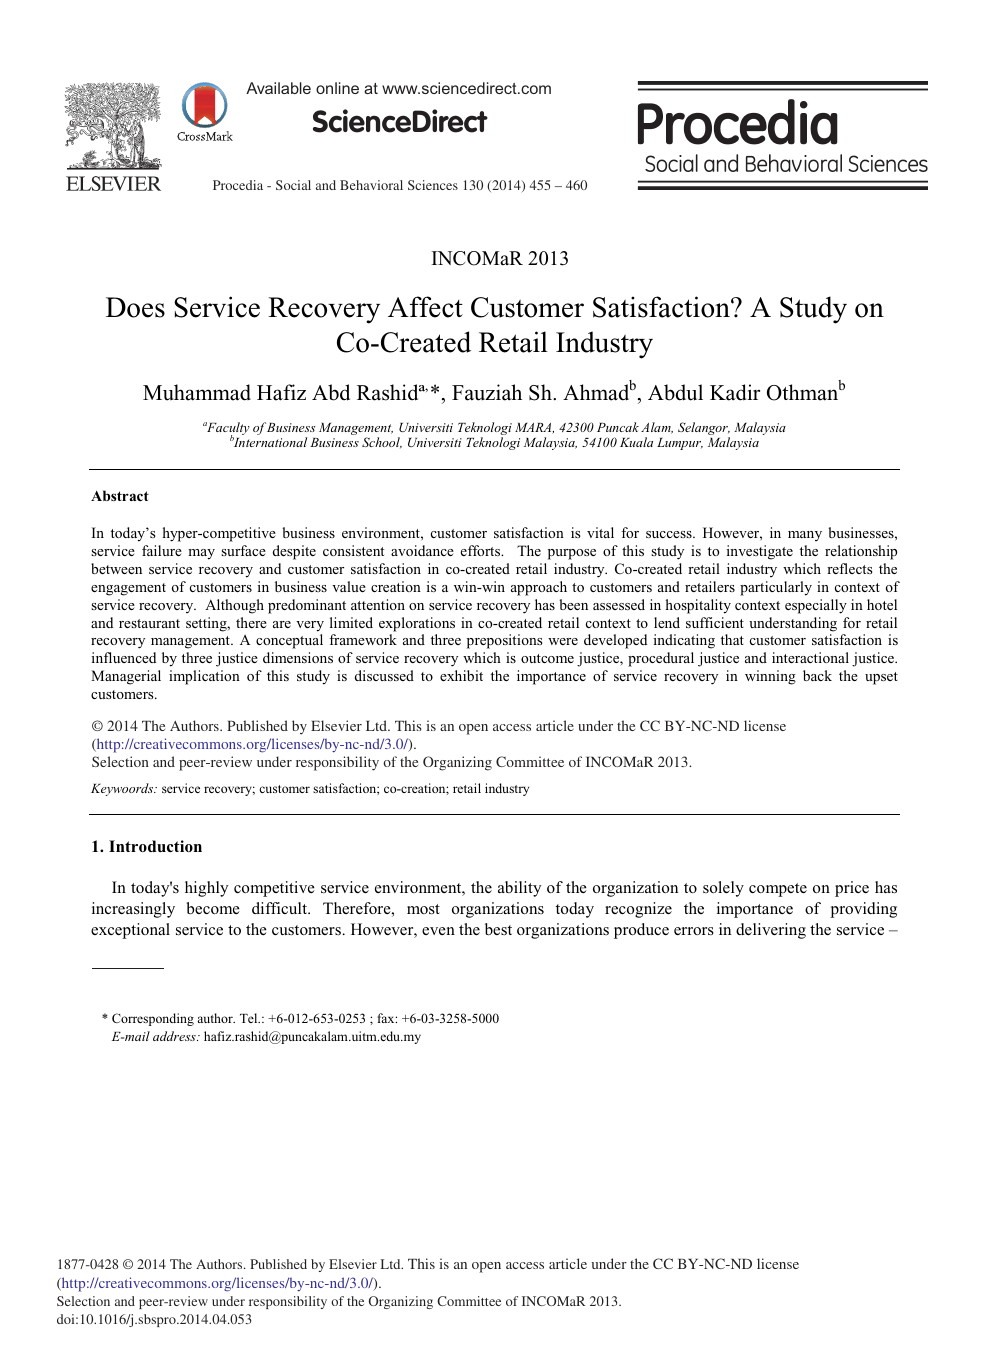 Does Service Recovery Affect Customer Satisfaction? A Study